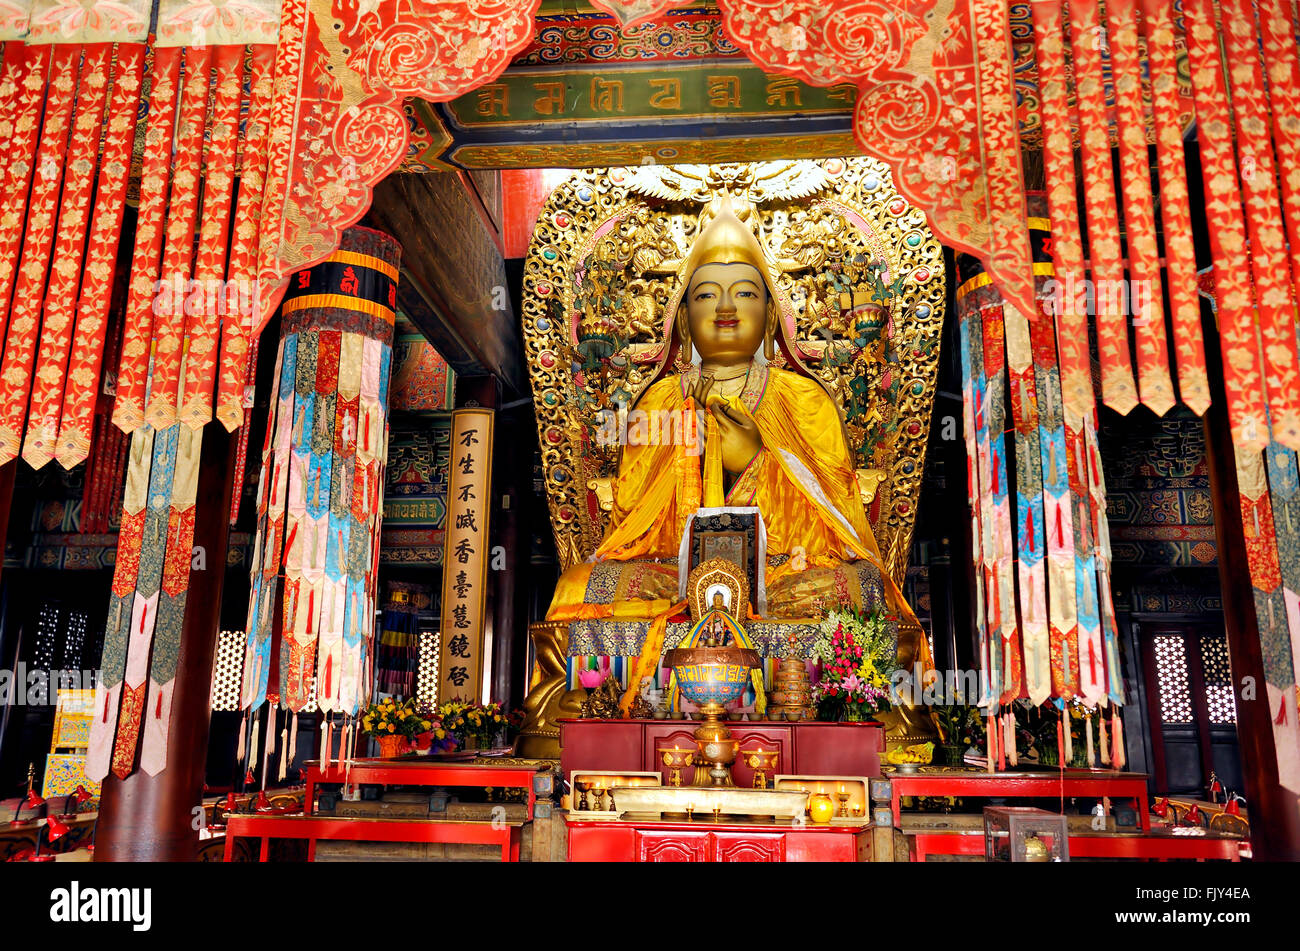 On the altar is Tsongkhapa in the Lama Temple of Beijing, China - Stock Image